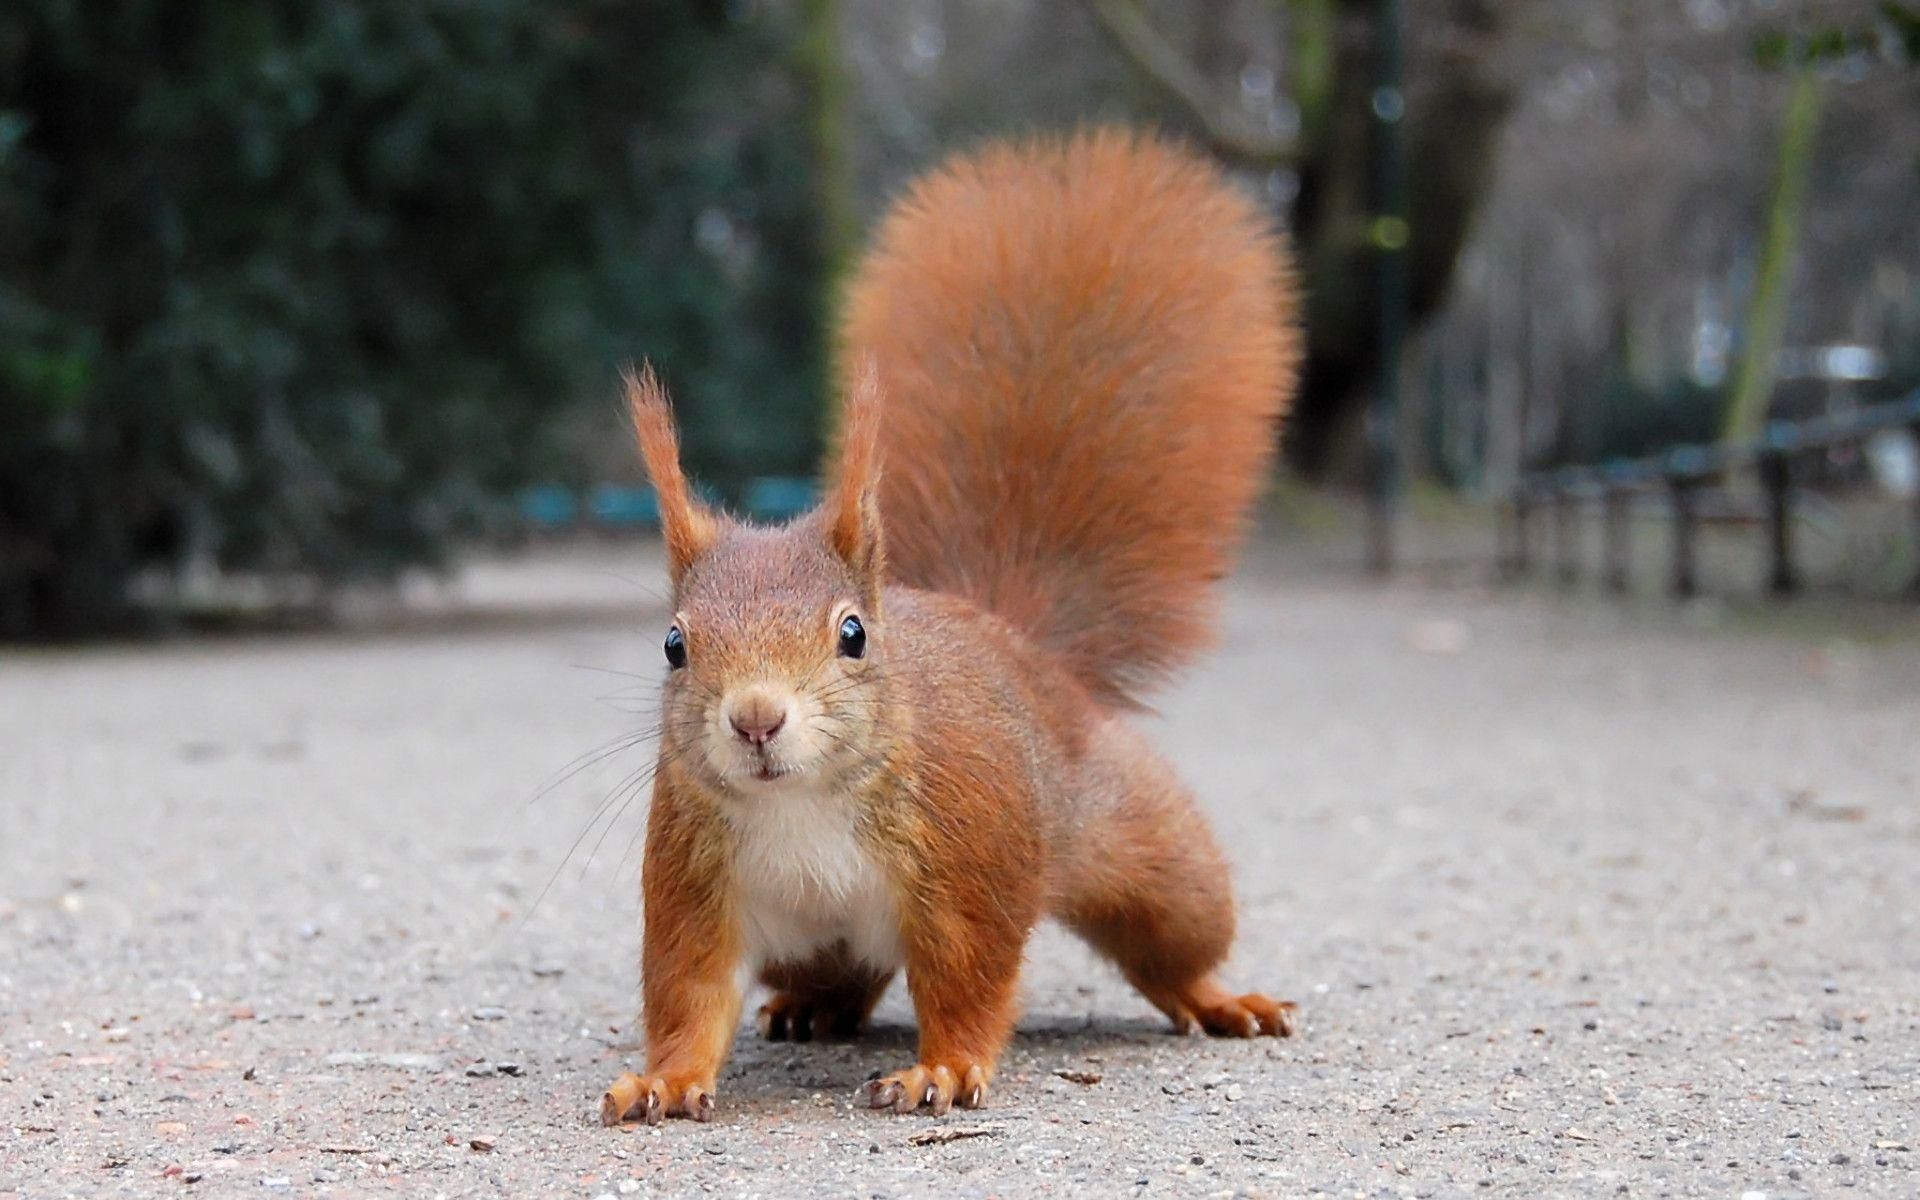 Funny Squirrel Wallpaper 39782 in Animals - Telusers.